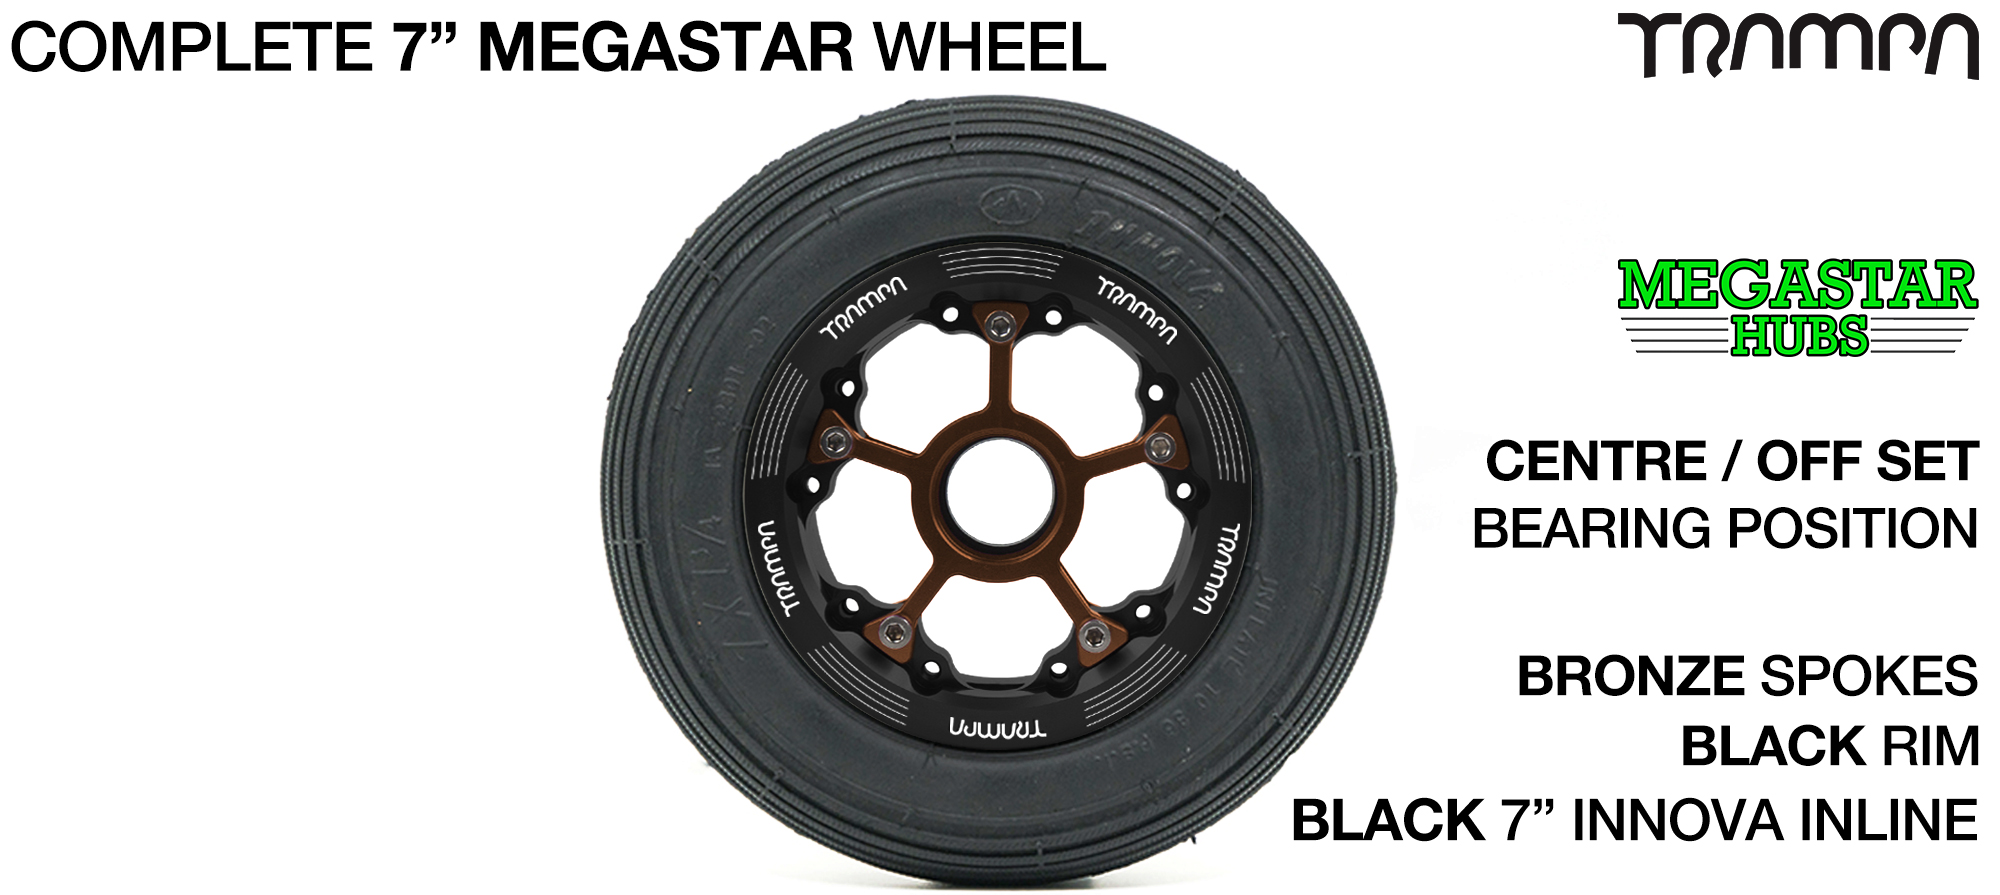 BLACK MEGASTAR Rims with BLACK Spokes & 7 Inch Tyres